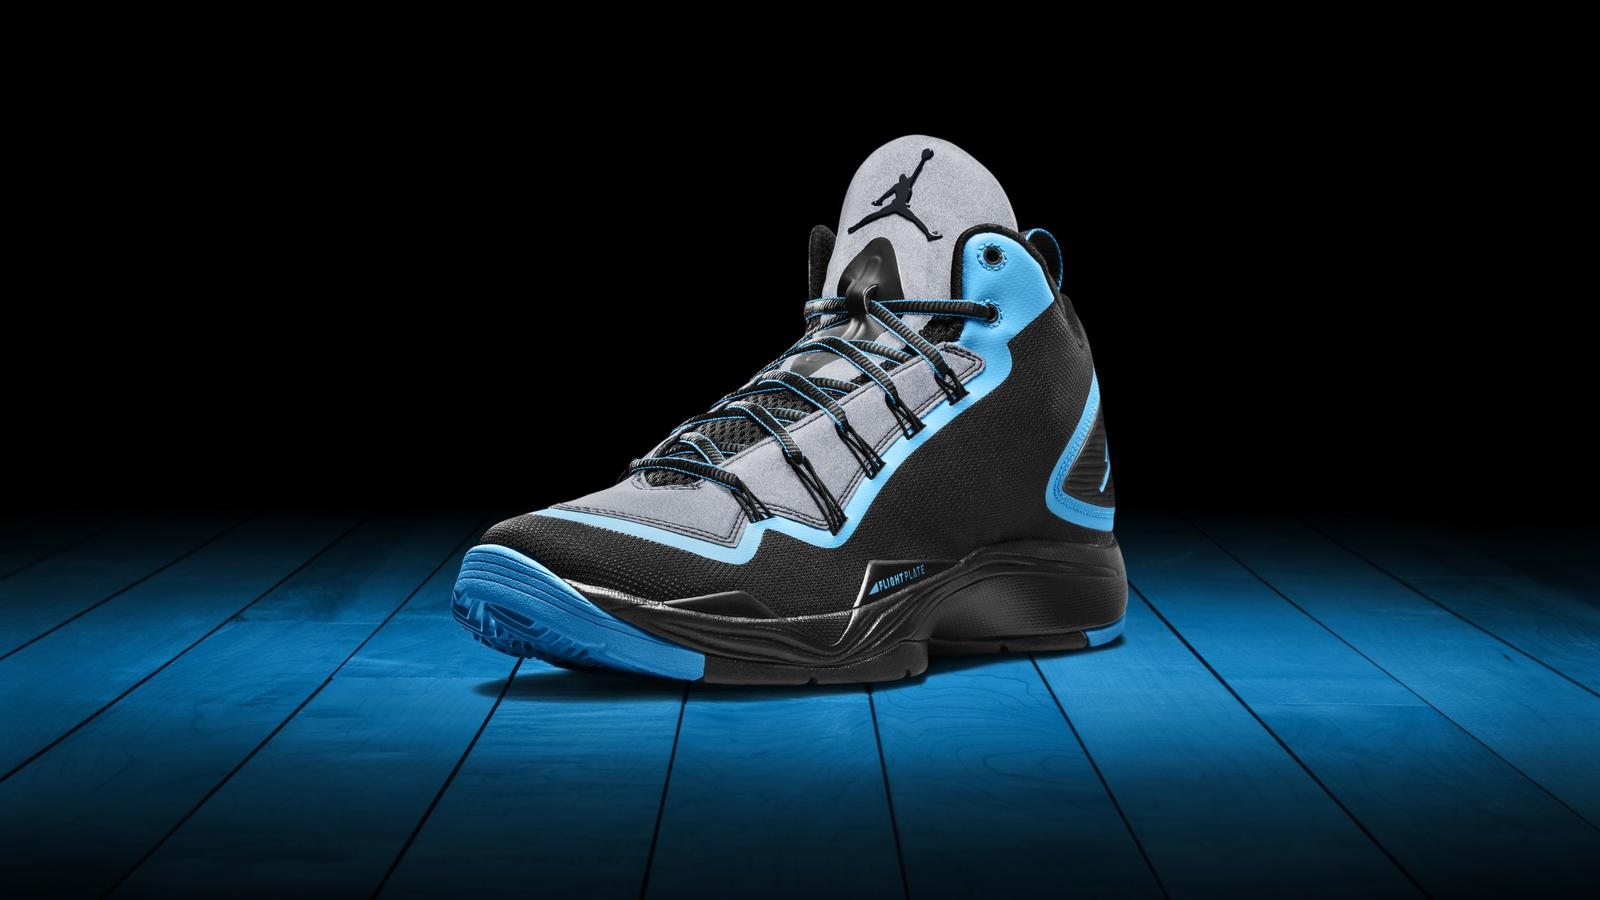 outlet store 60f2c a0ac8 Jordan Playoff Series- S.F 2 PO